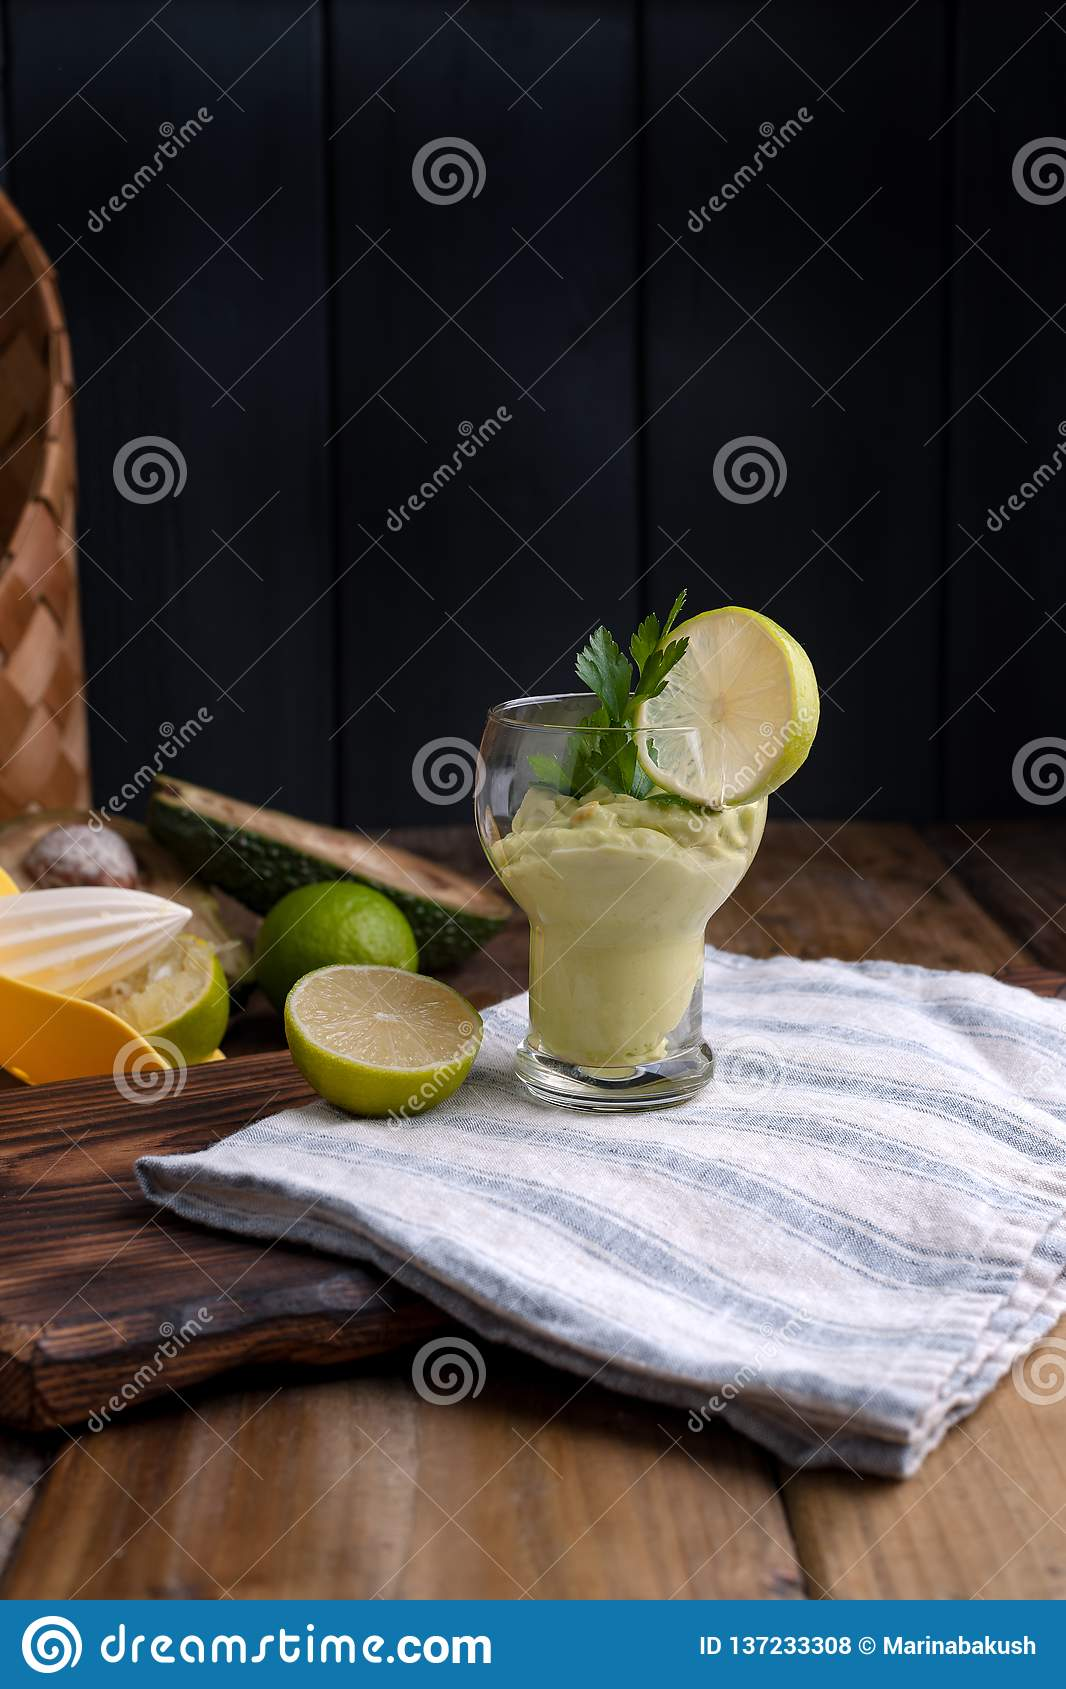 Avocado smoothie and lime in a glass. Food for health and beauty. Super food from vegetables and fruits. Wooden background, free